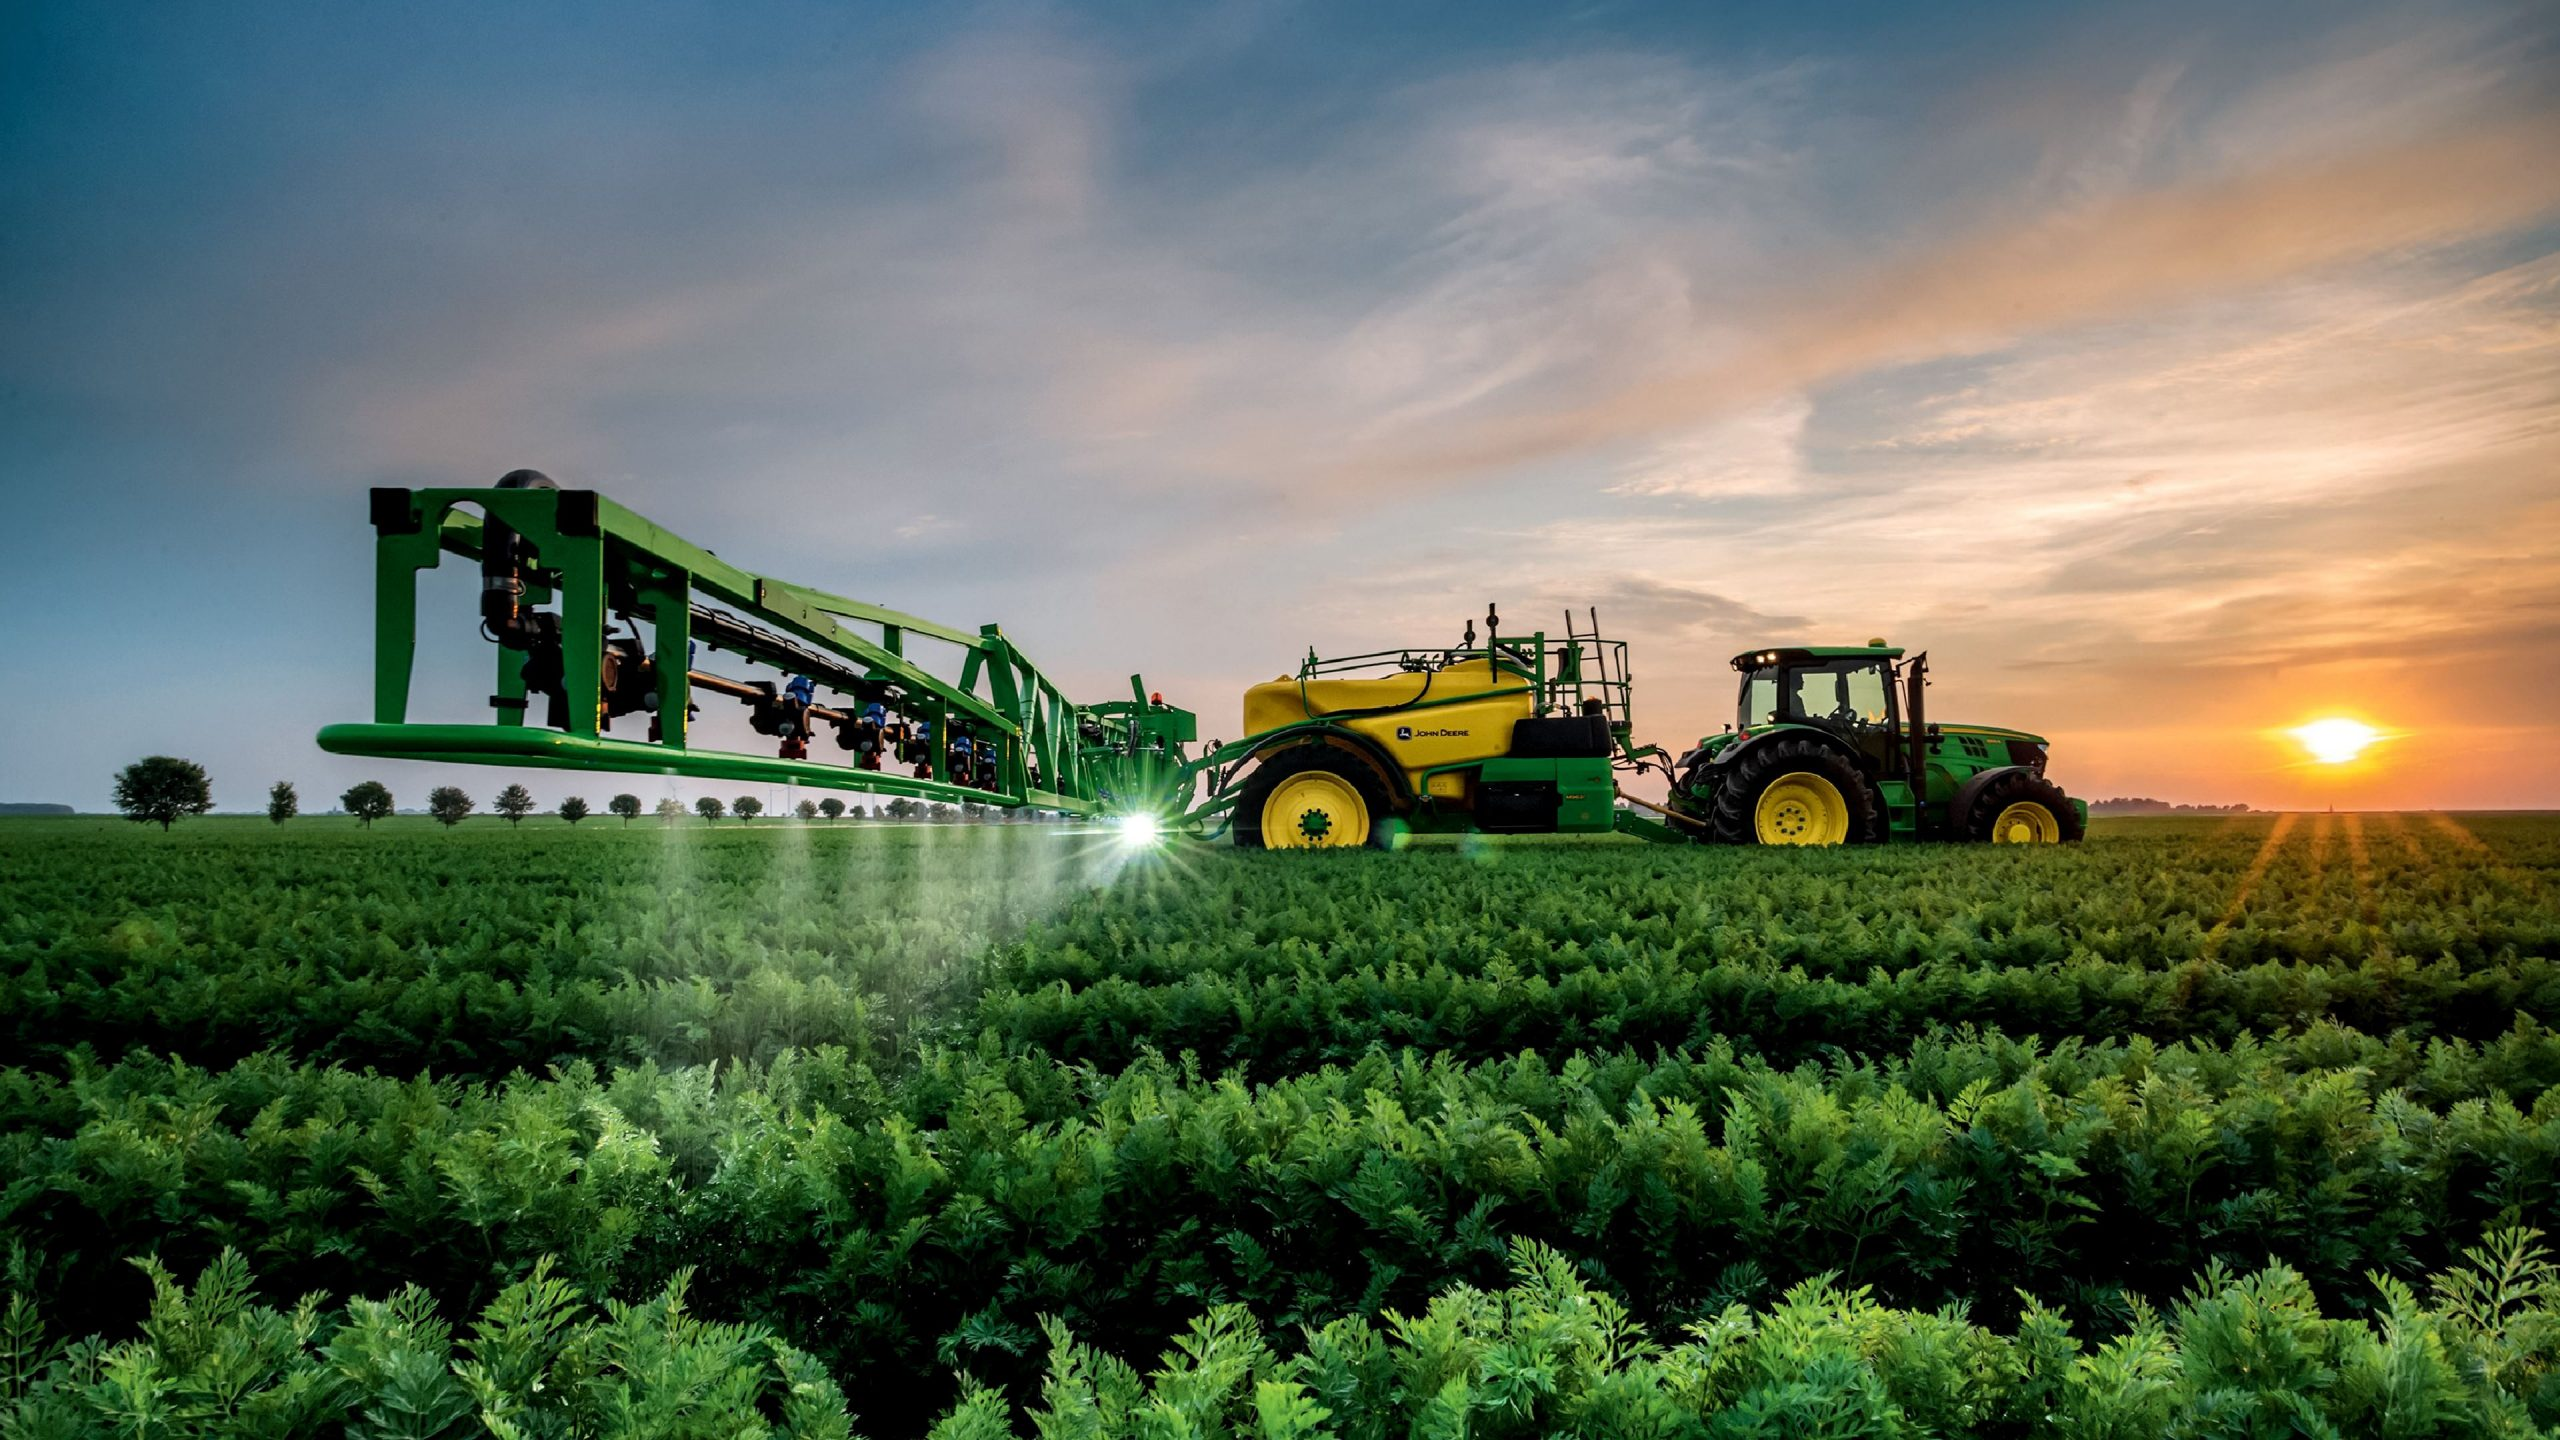 John Deere Tractor and Sprayer with Sunset